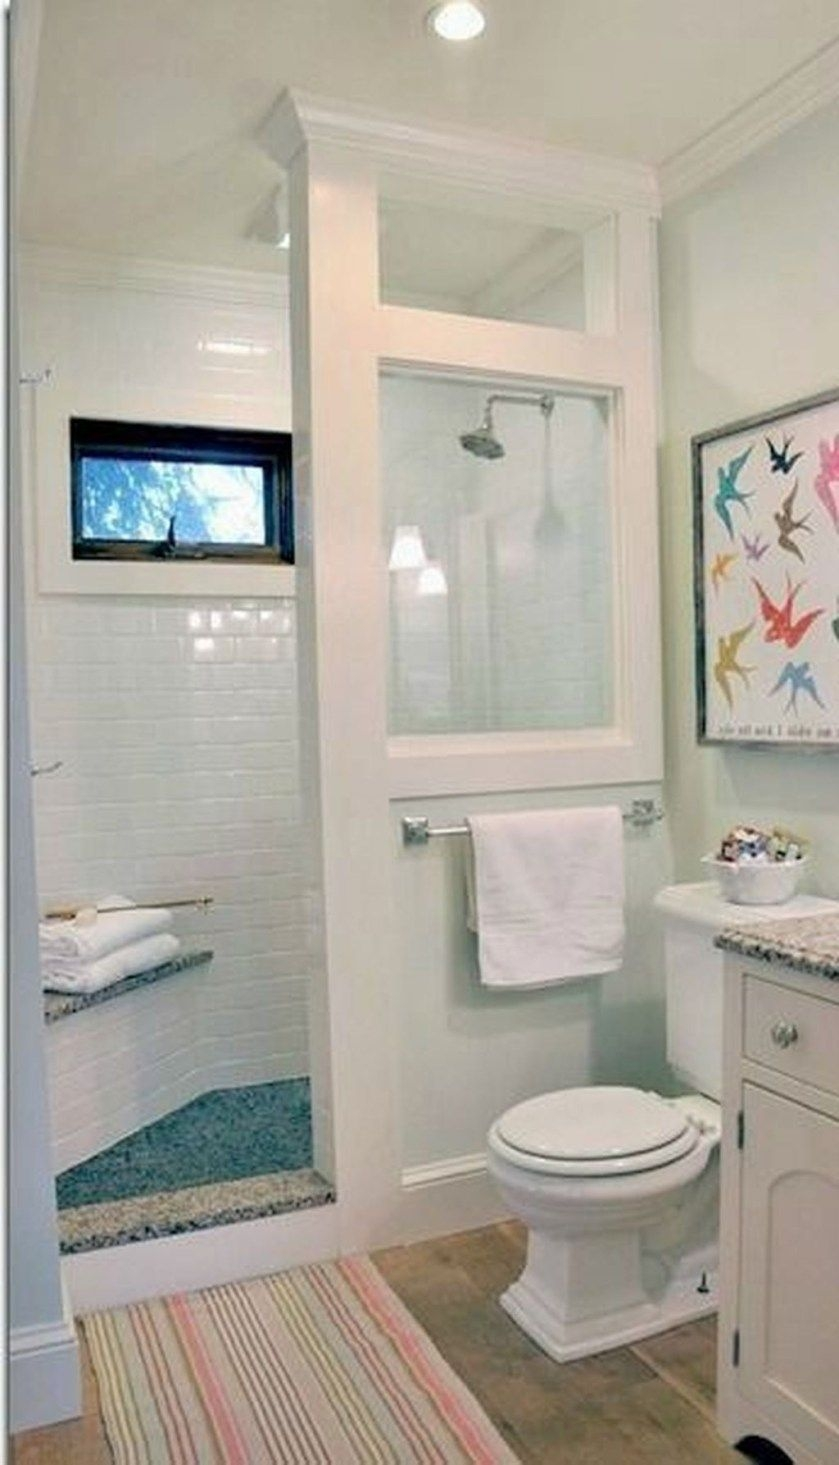 Cute Small Bathroom Decor Ideas On A Budget To Try23